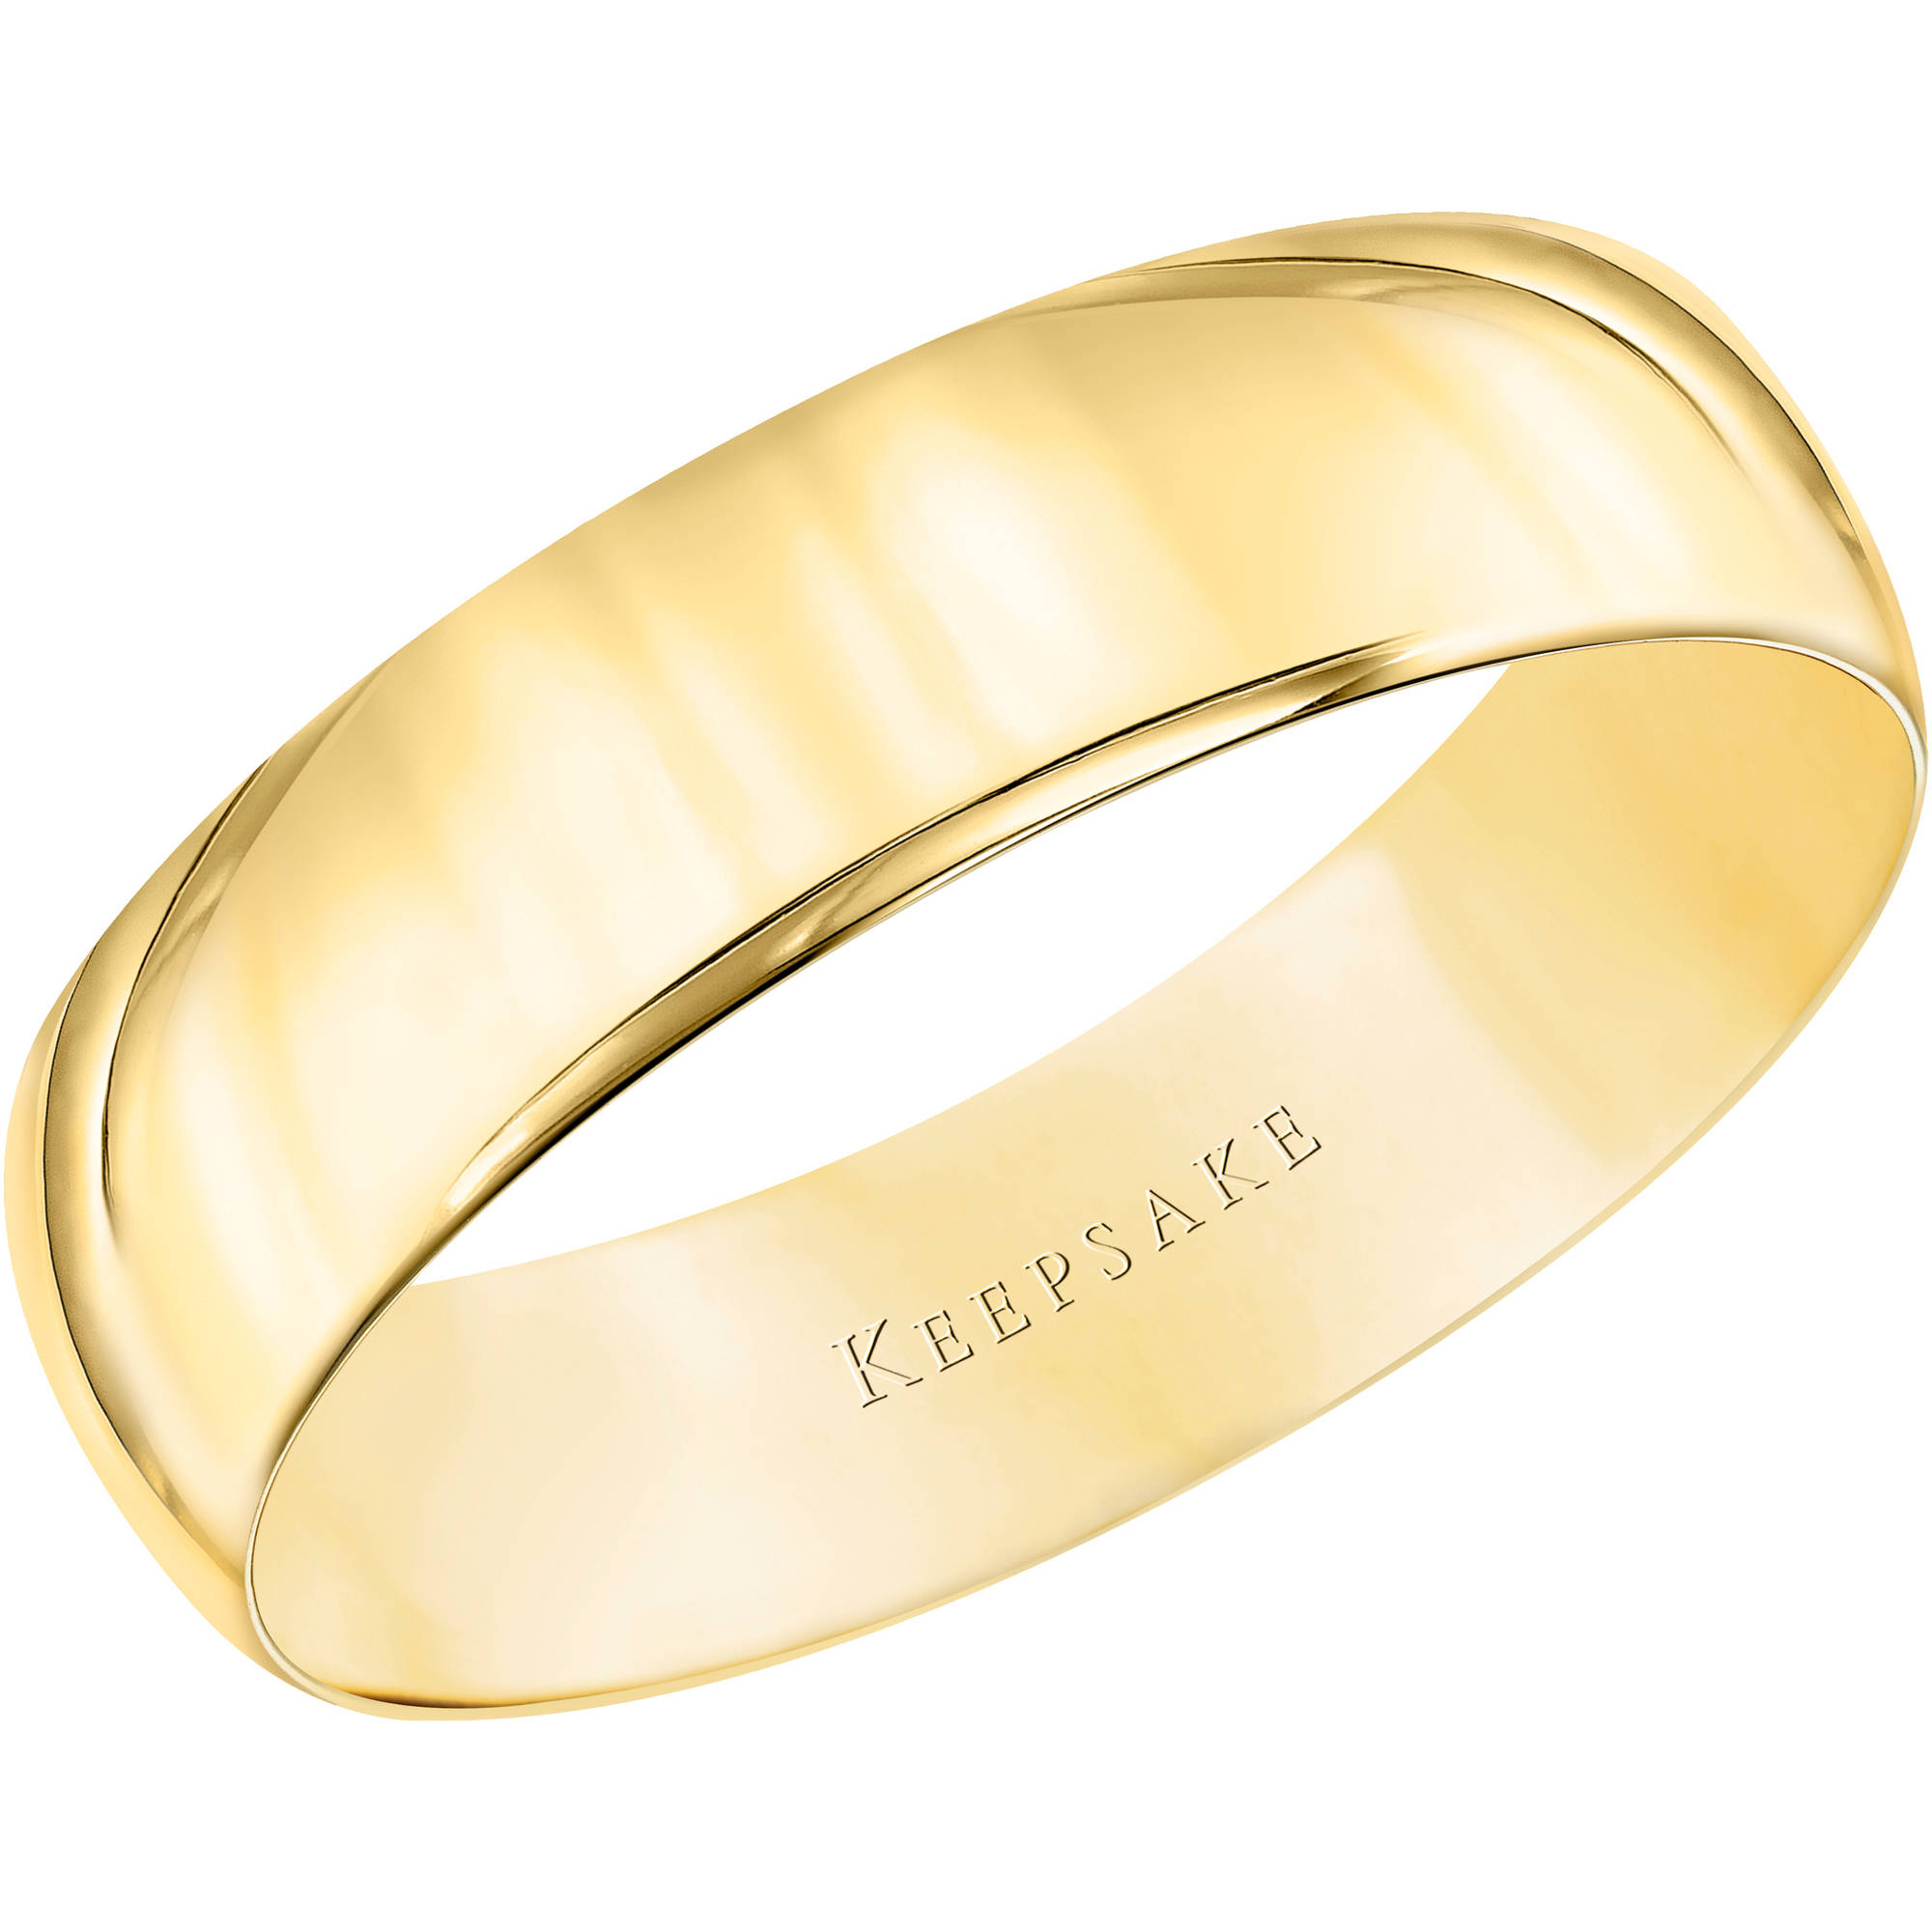 for ladies patterned and gold wedding rind rings engraved nl band yellow bands textured c polished designed